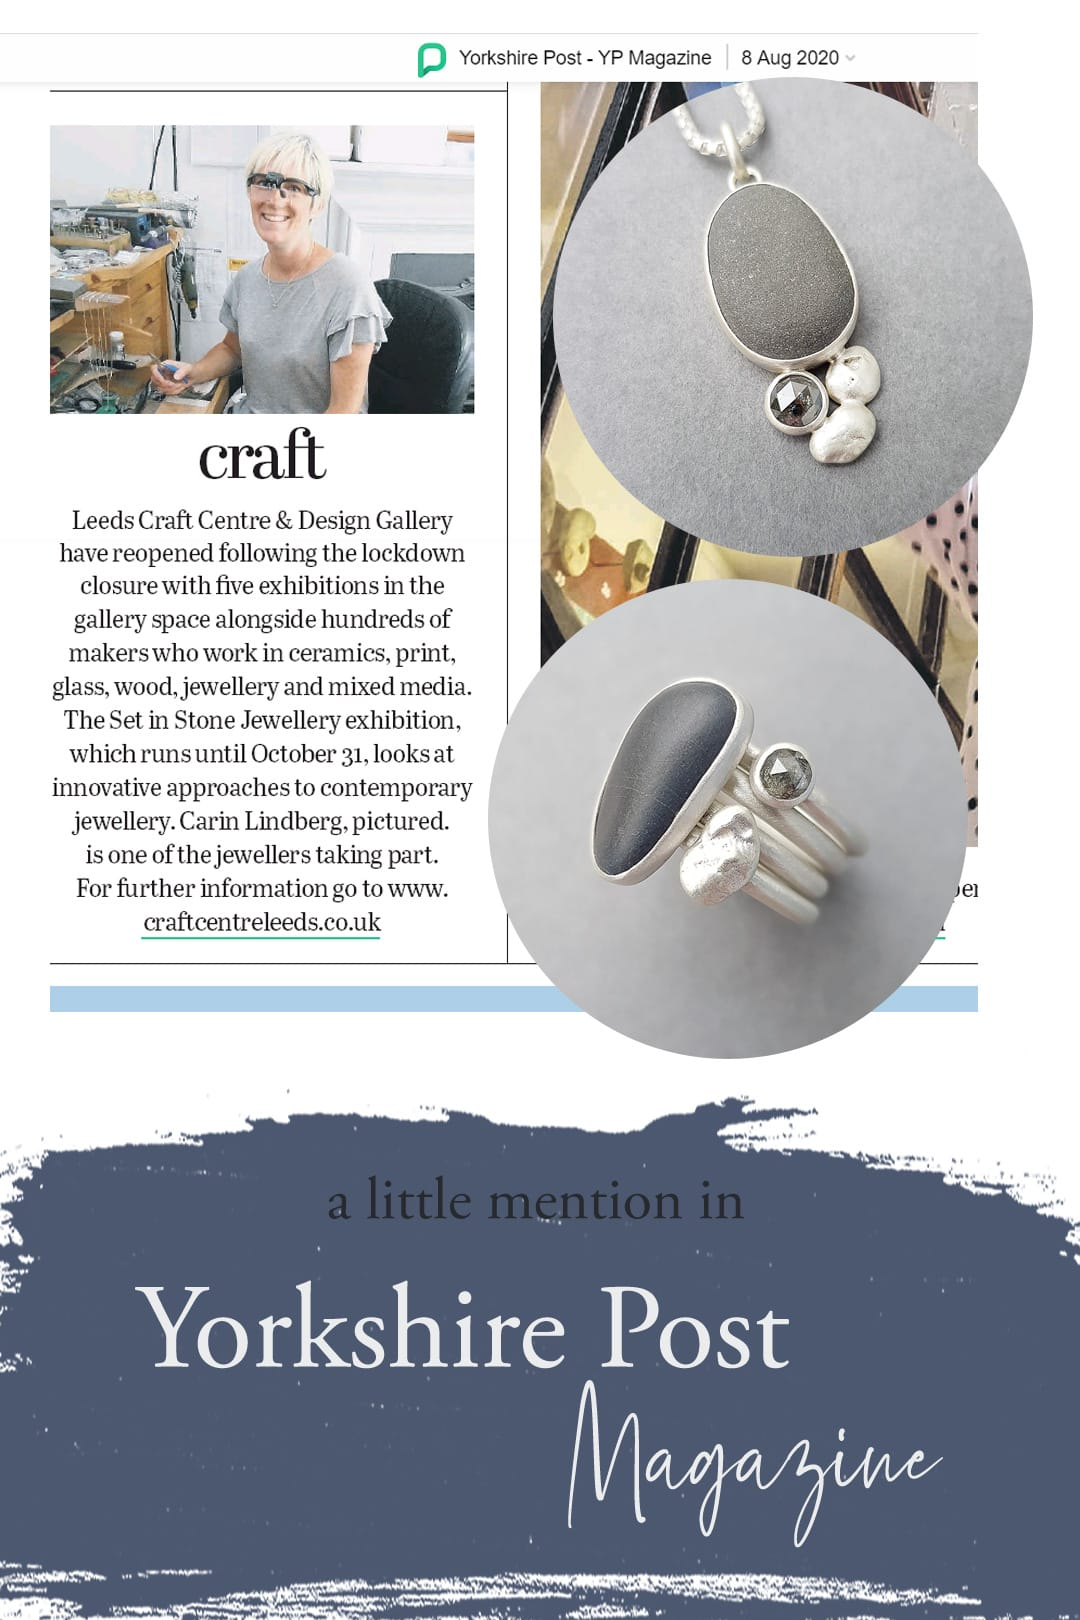 Carin Lindberg Jewellery mentioned in Yorkshire Post Magazine